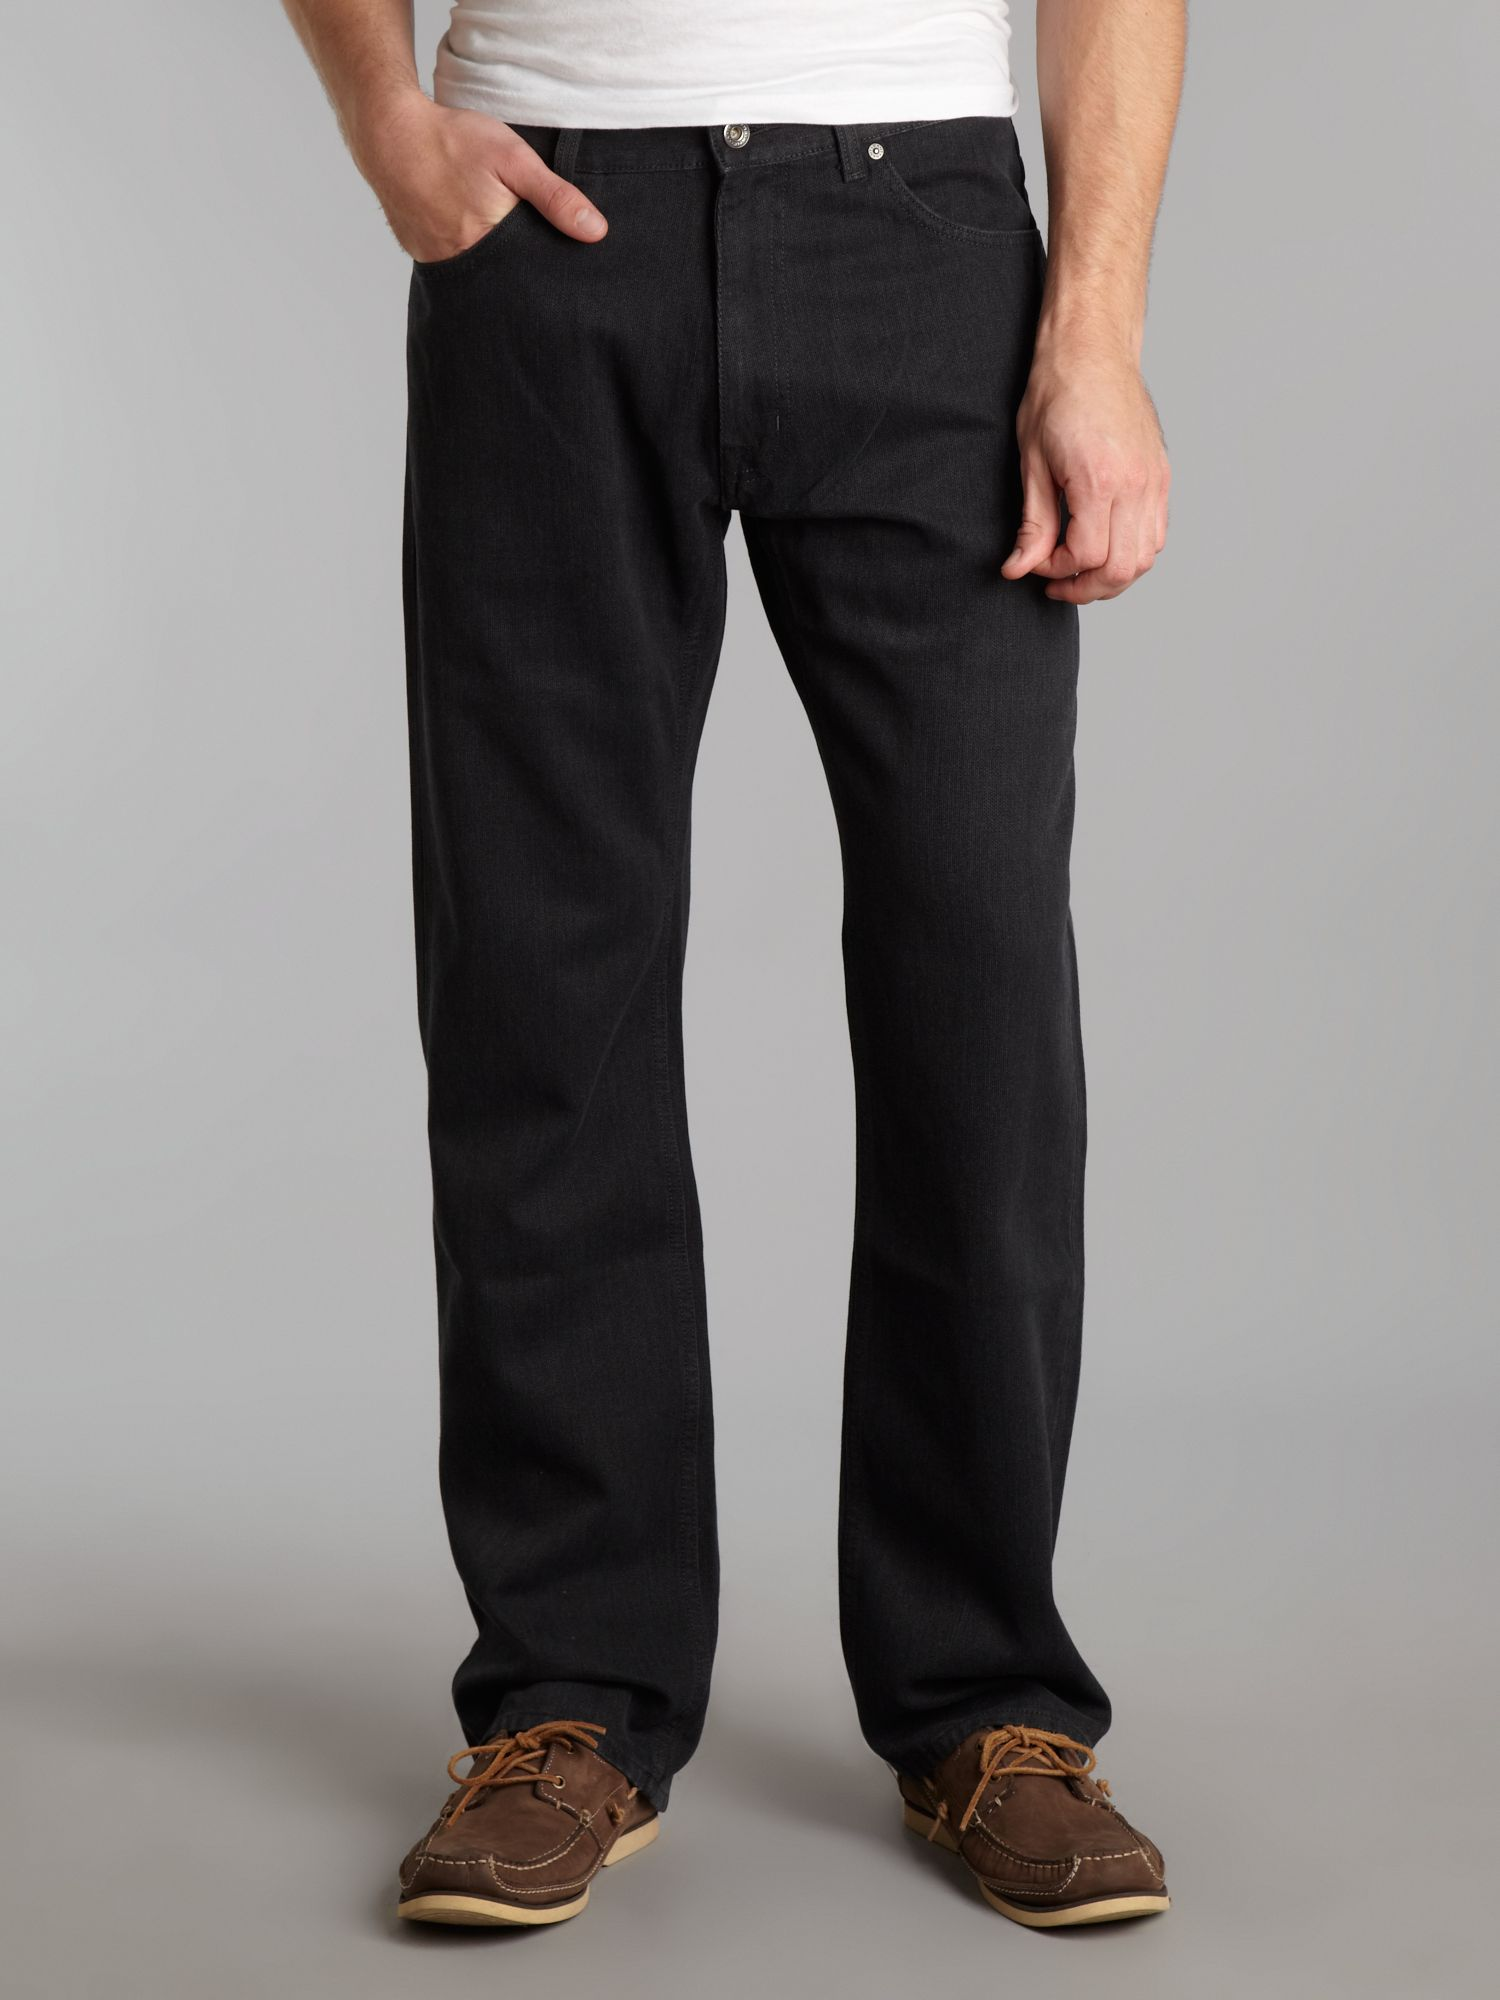 Regular fit melange whip corduroy trousers